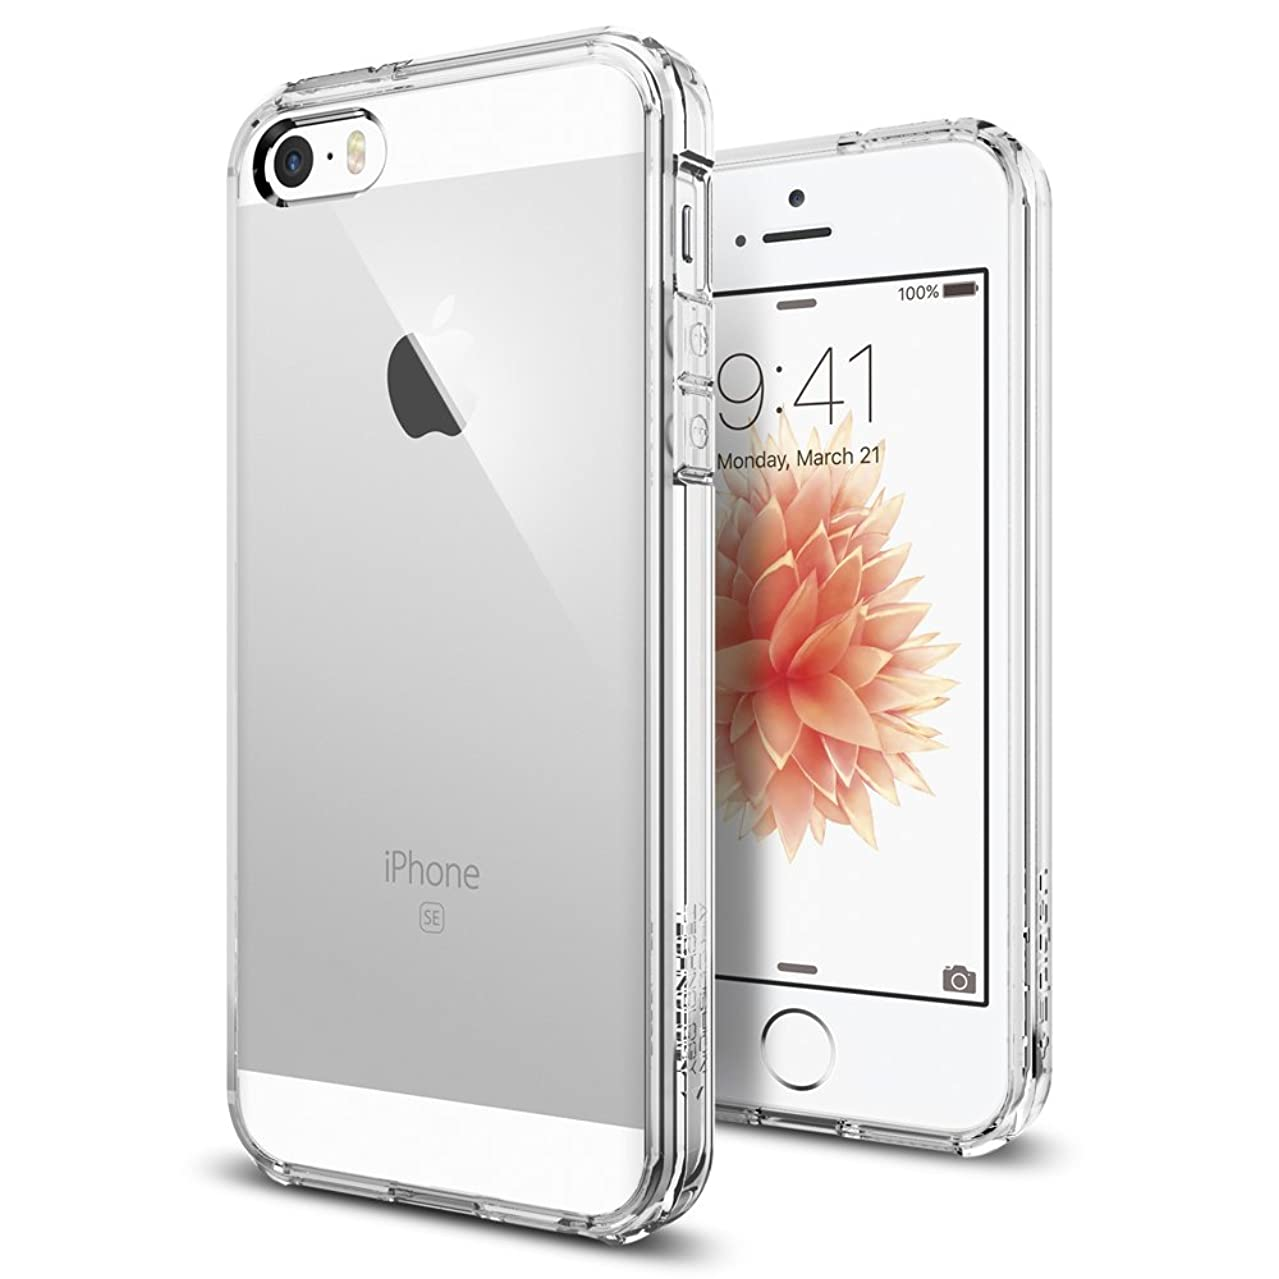 Spigen Ultra Hybrid iPhone 5S / 5 Case with Air Cushion Technology and Hybrid Drop Protection for iPhone 5S / iPhone 5 - Crystal Clear